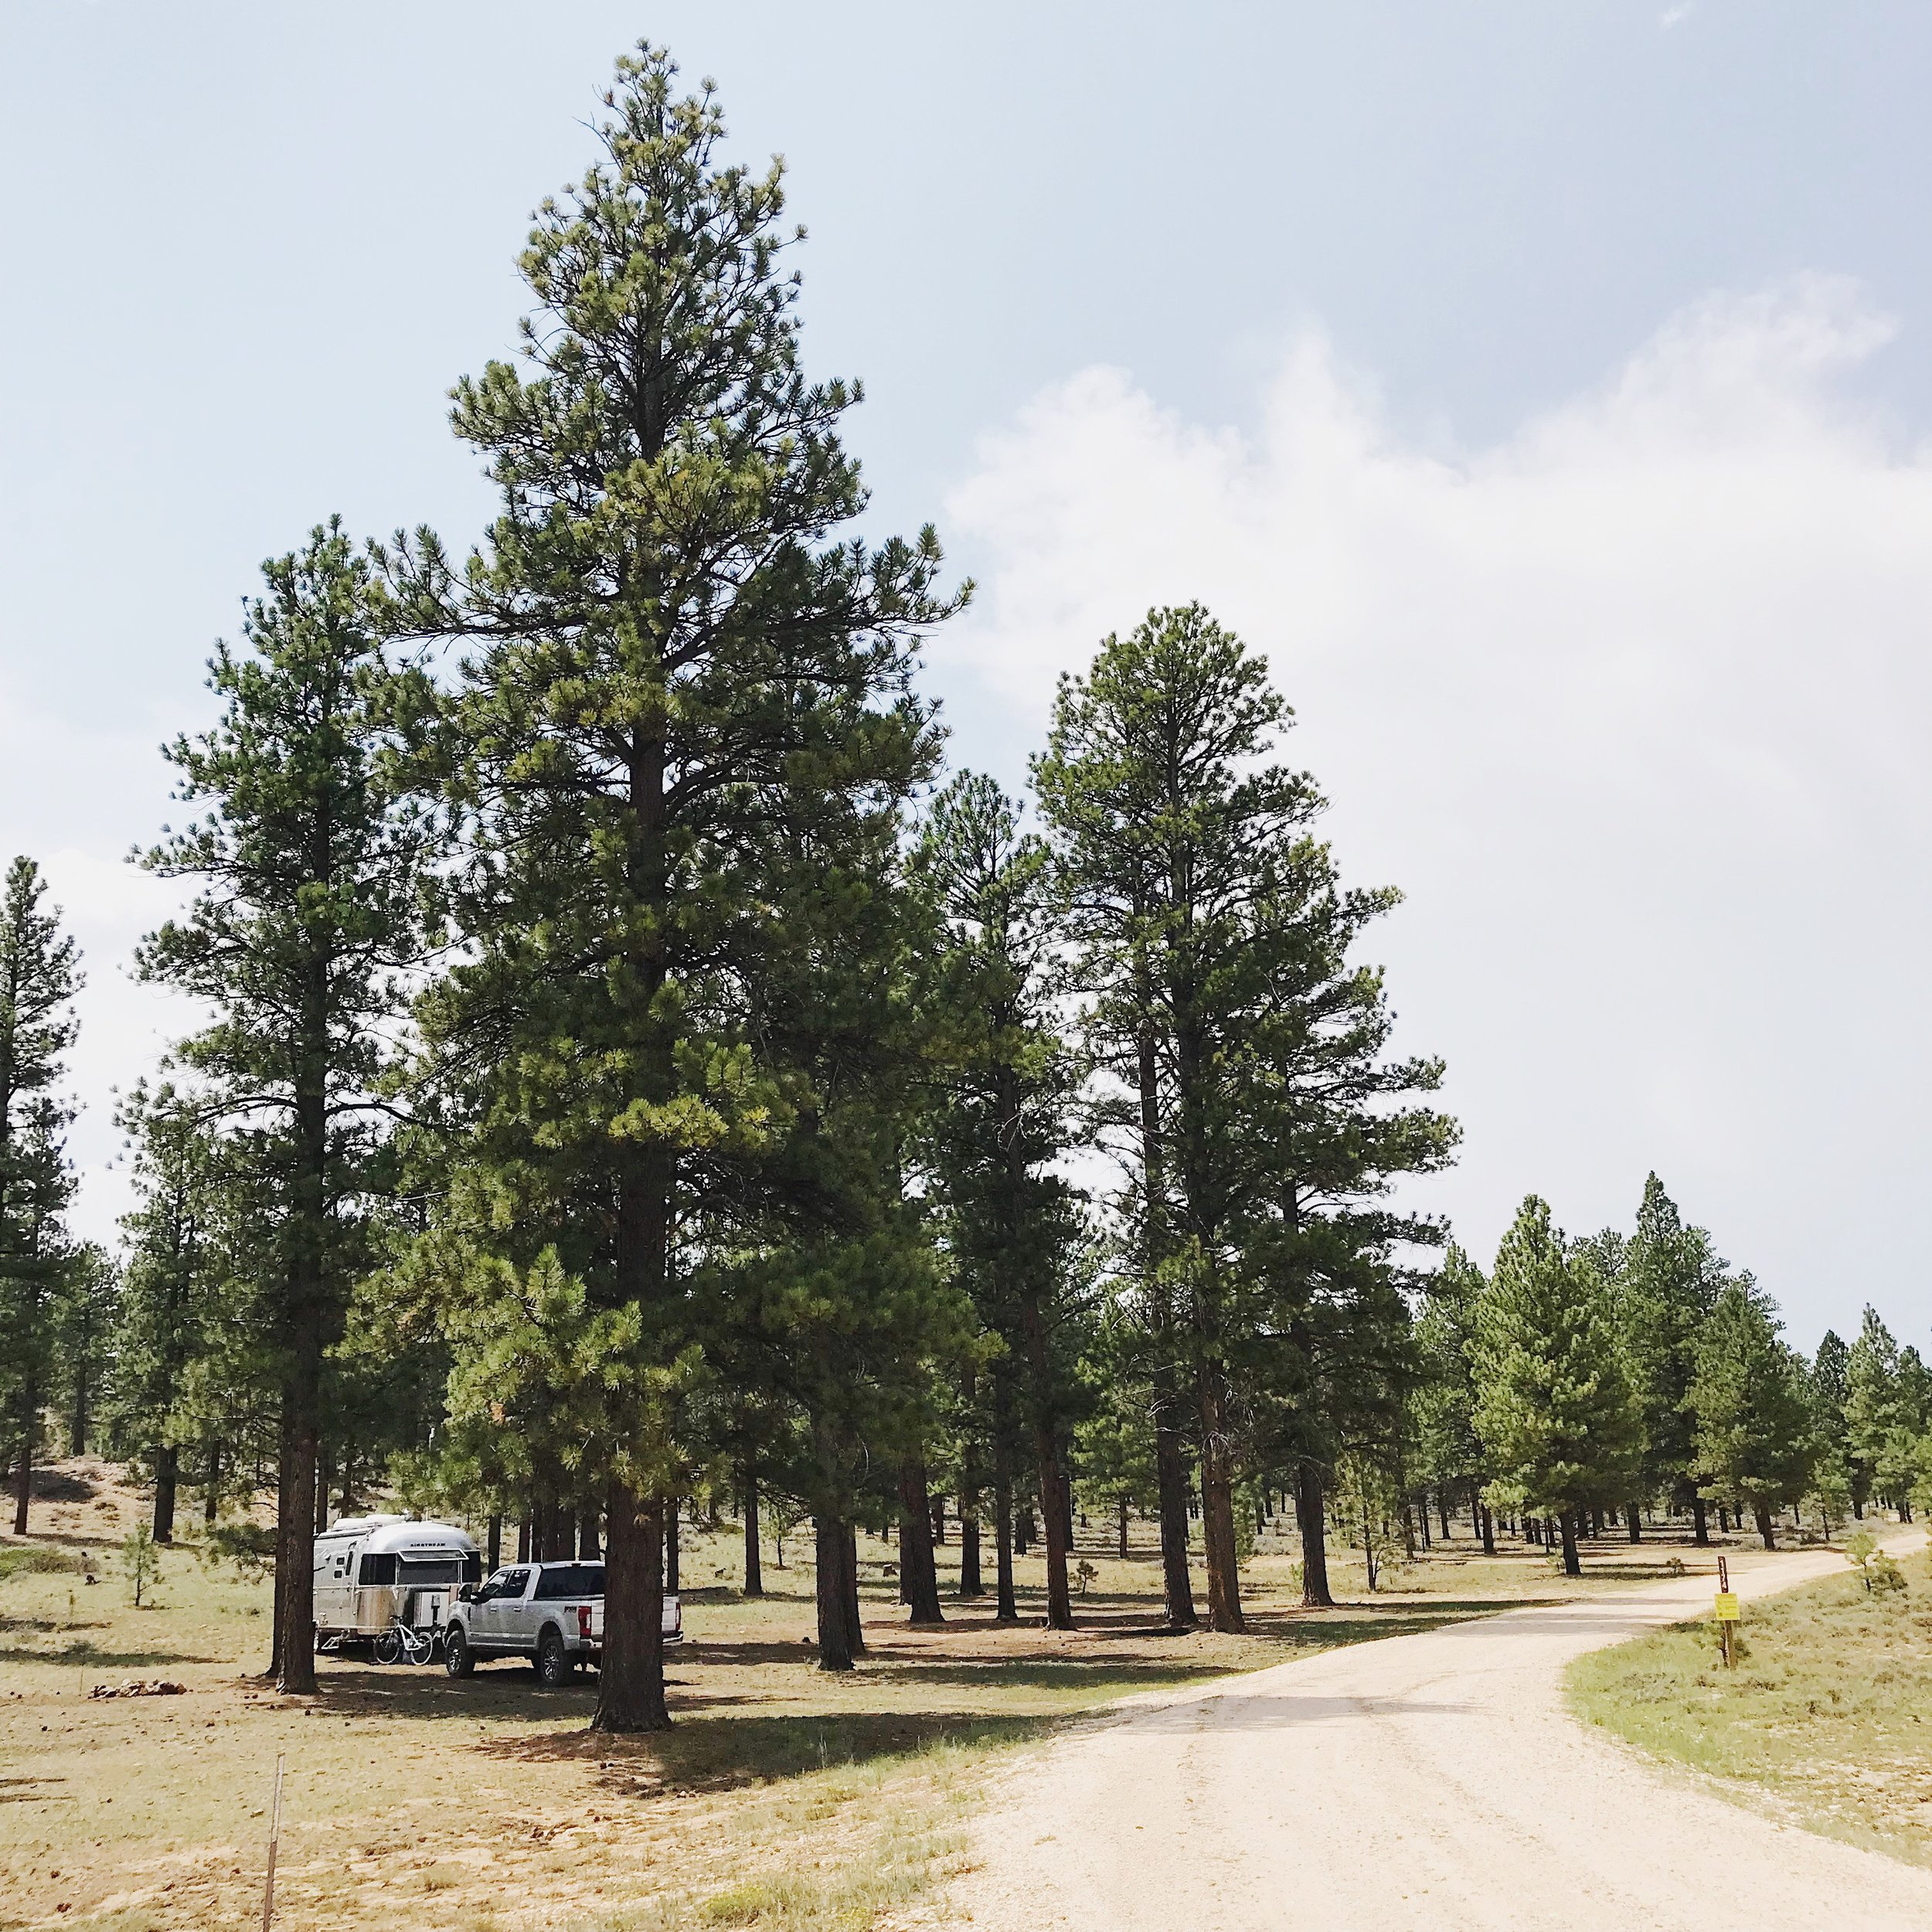 George's Gift - Free dispersed camping